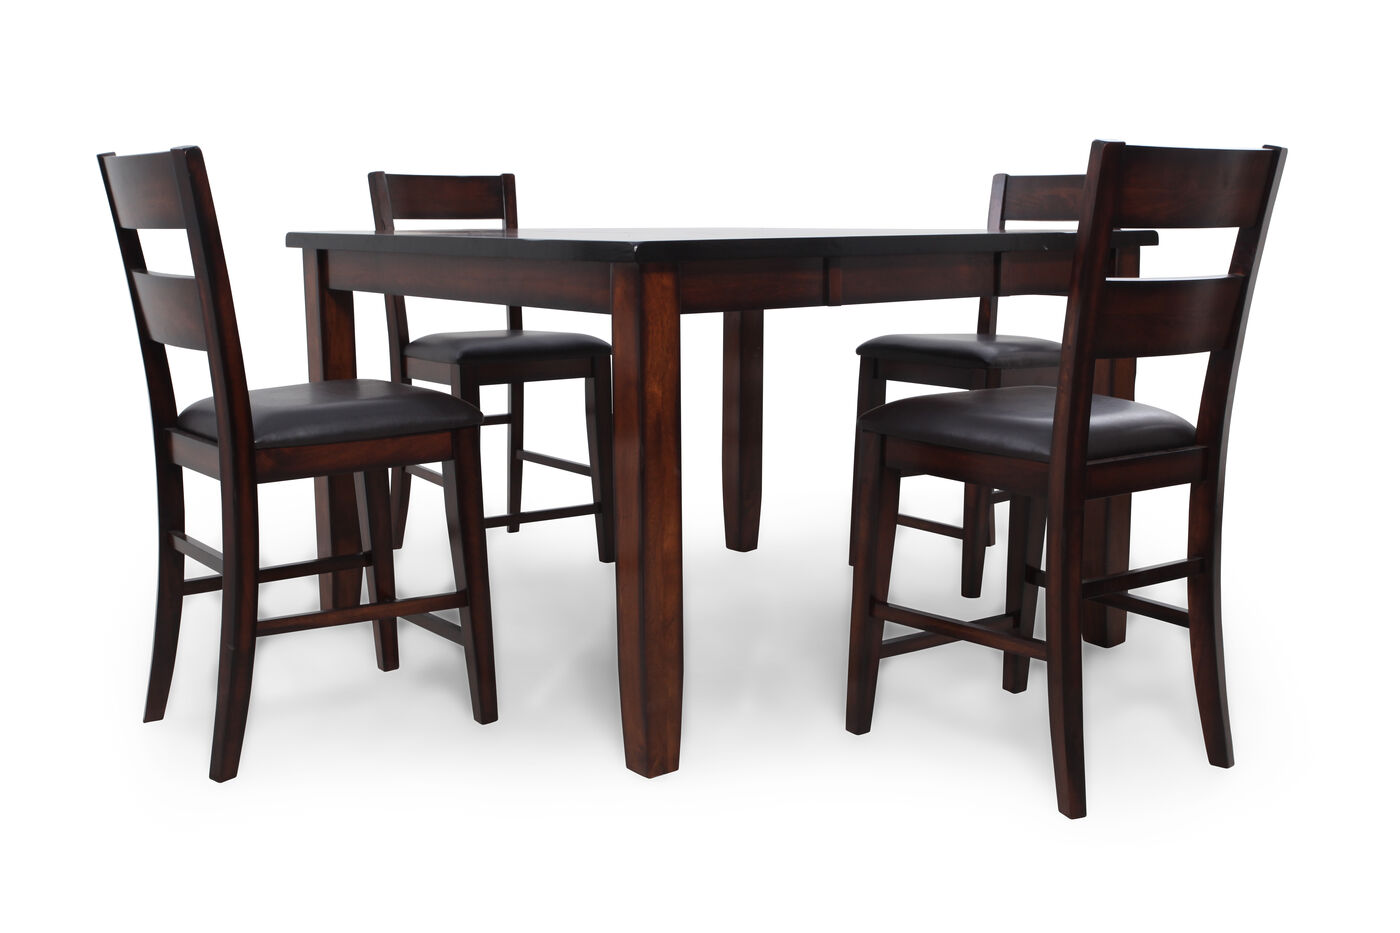 Mathis Brothers Dining Table And Chairs Inspirational Kitchen Sets Five Piece Solid Wood Contemporary 543939 Pub Set